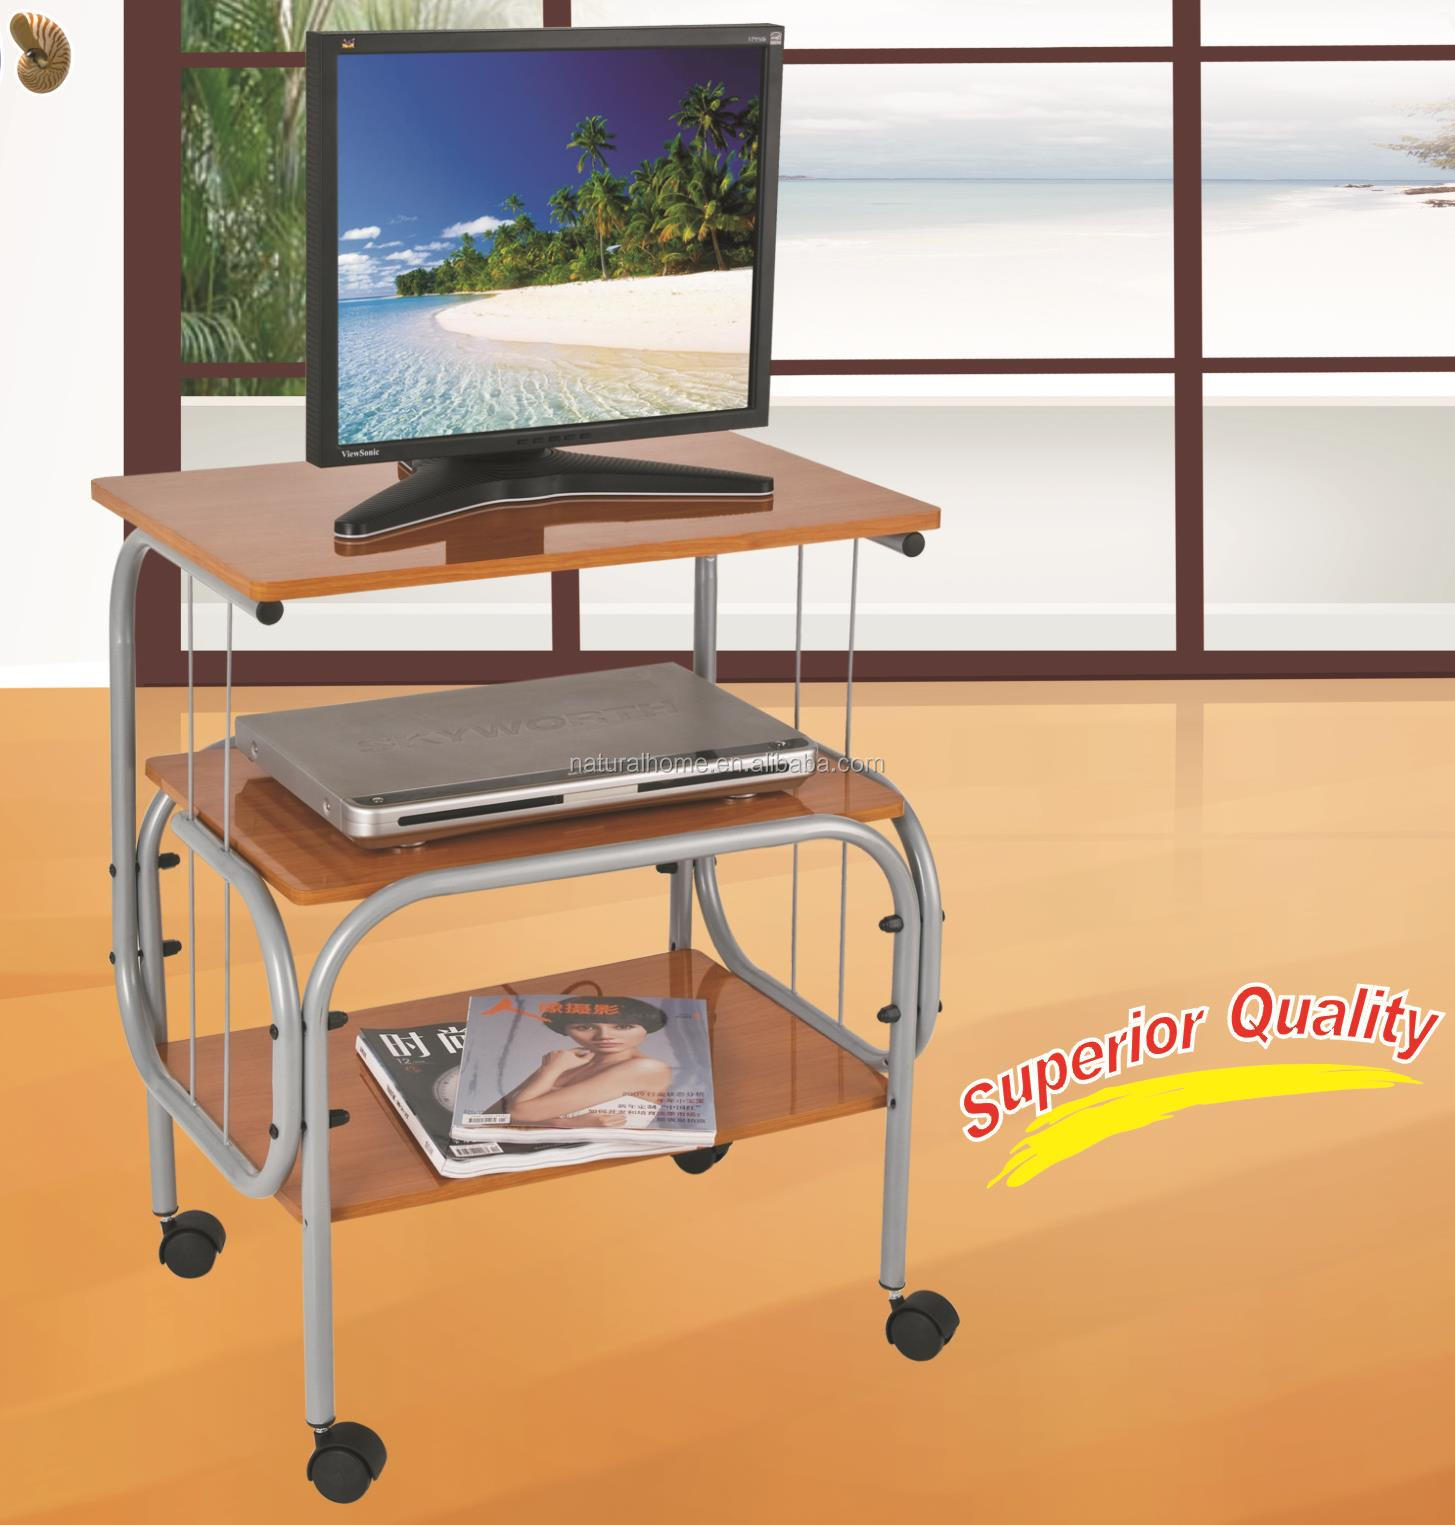 Top Panama Simple Wooden Tv Stand Particle Board Metal Trolley With Wheels